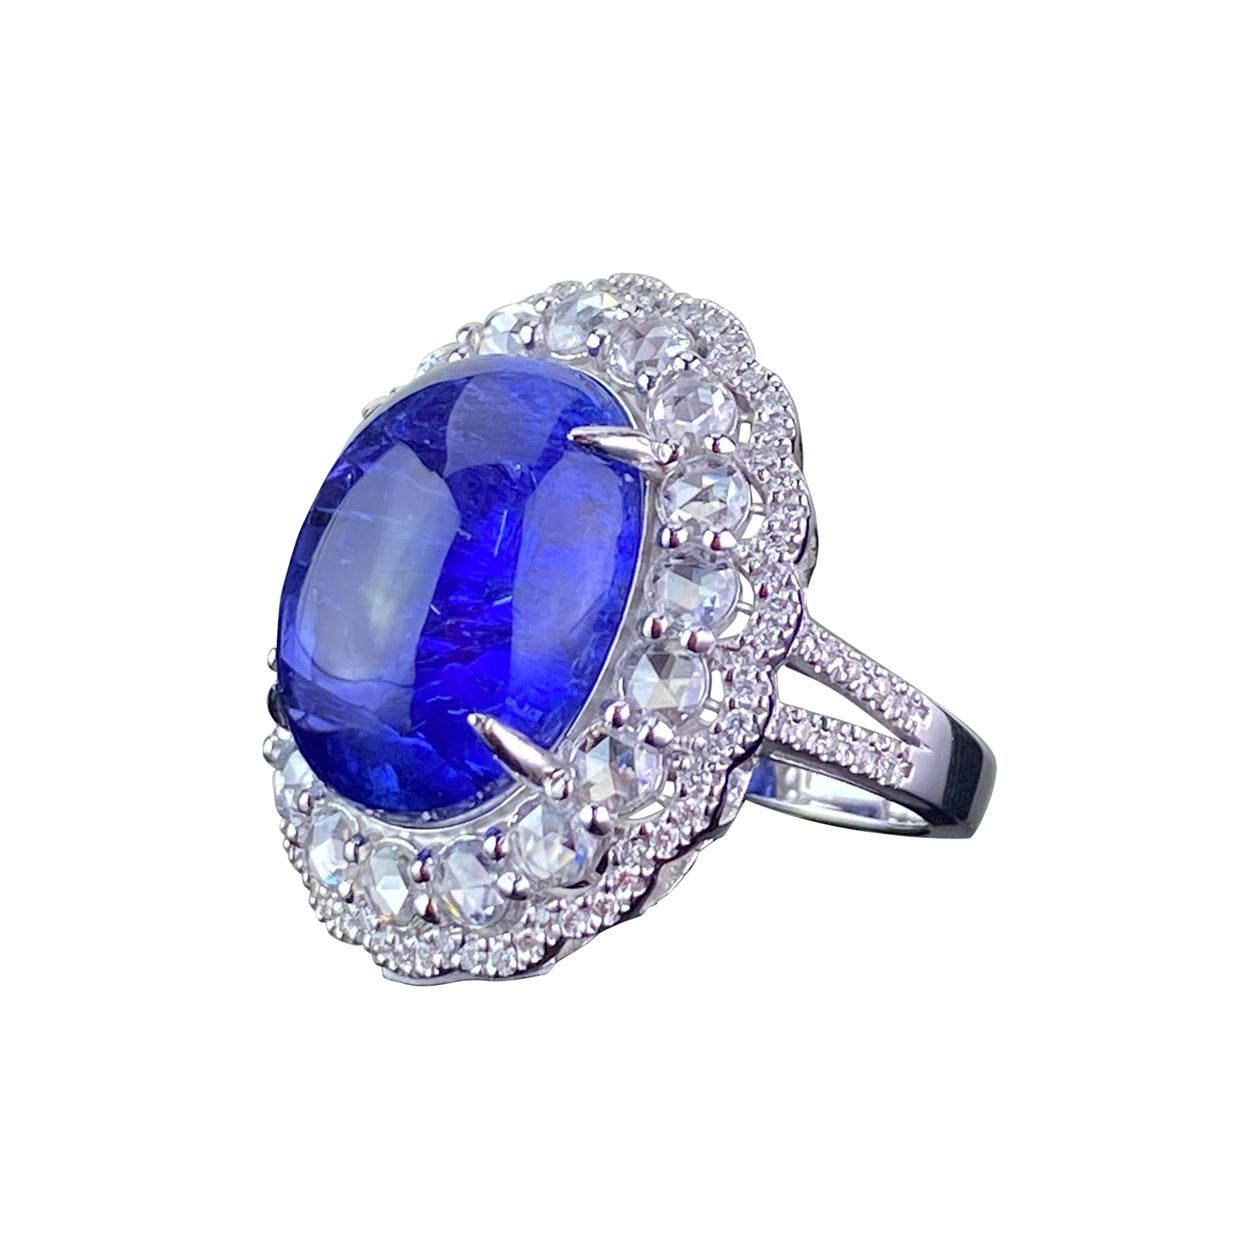 Certified 14.34 Tanzanite Cabochon and Diamond 18k White Gold Cocktail Ring